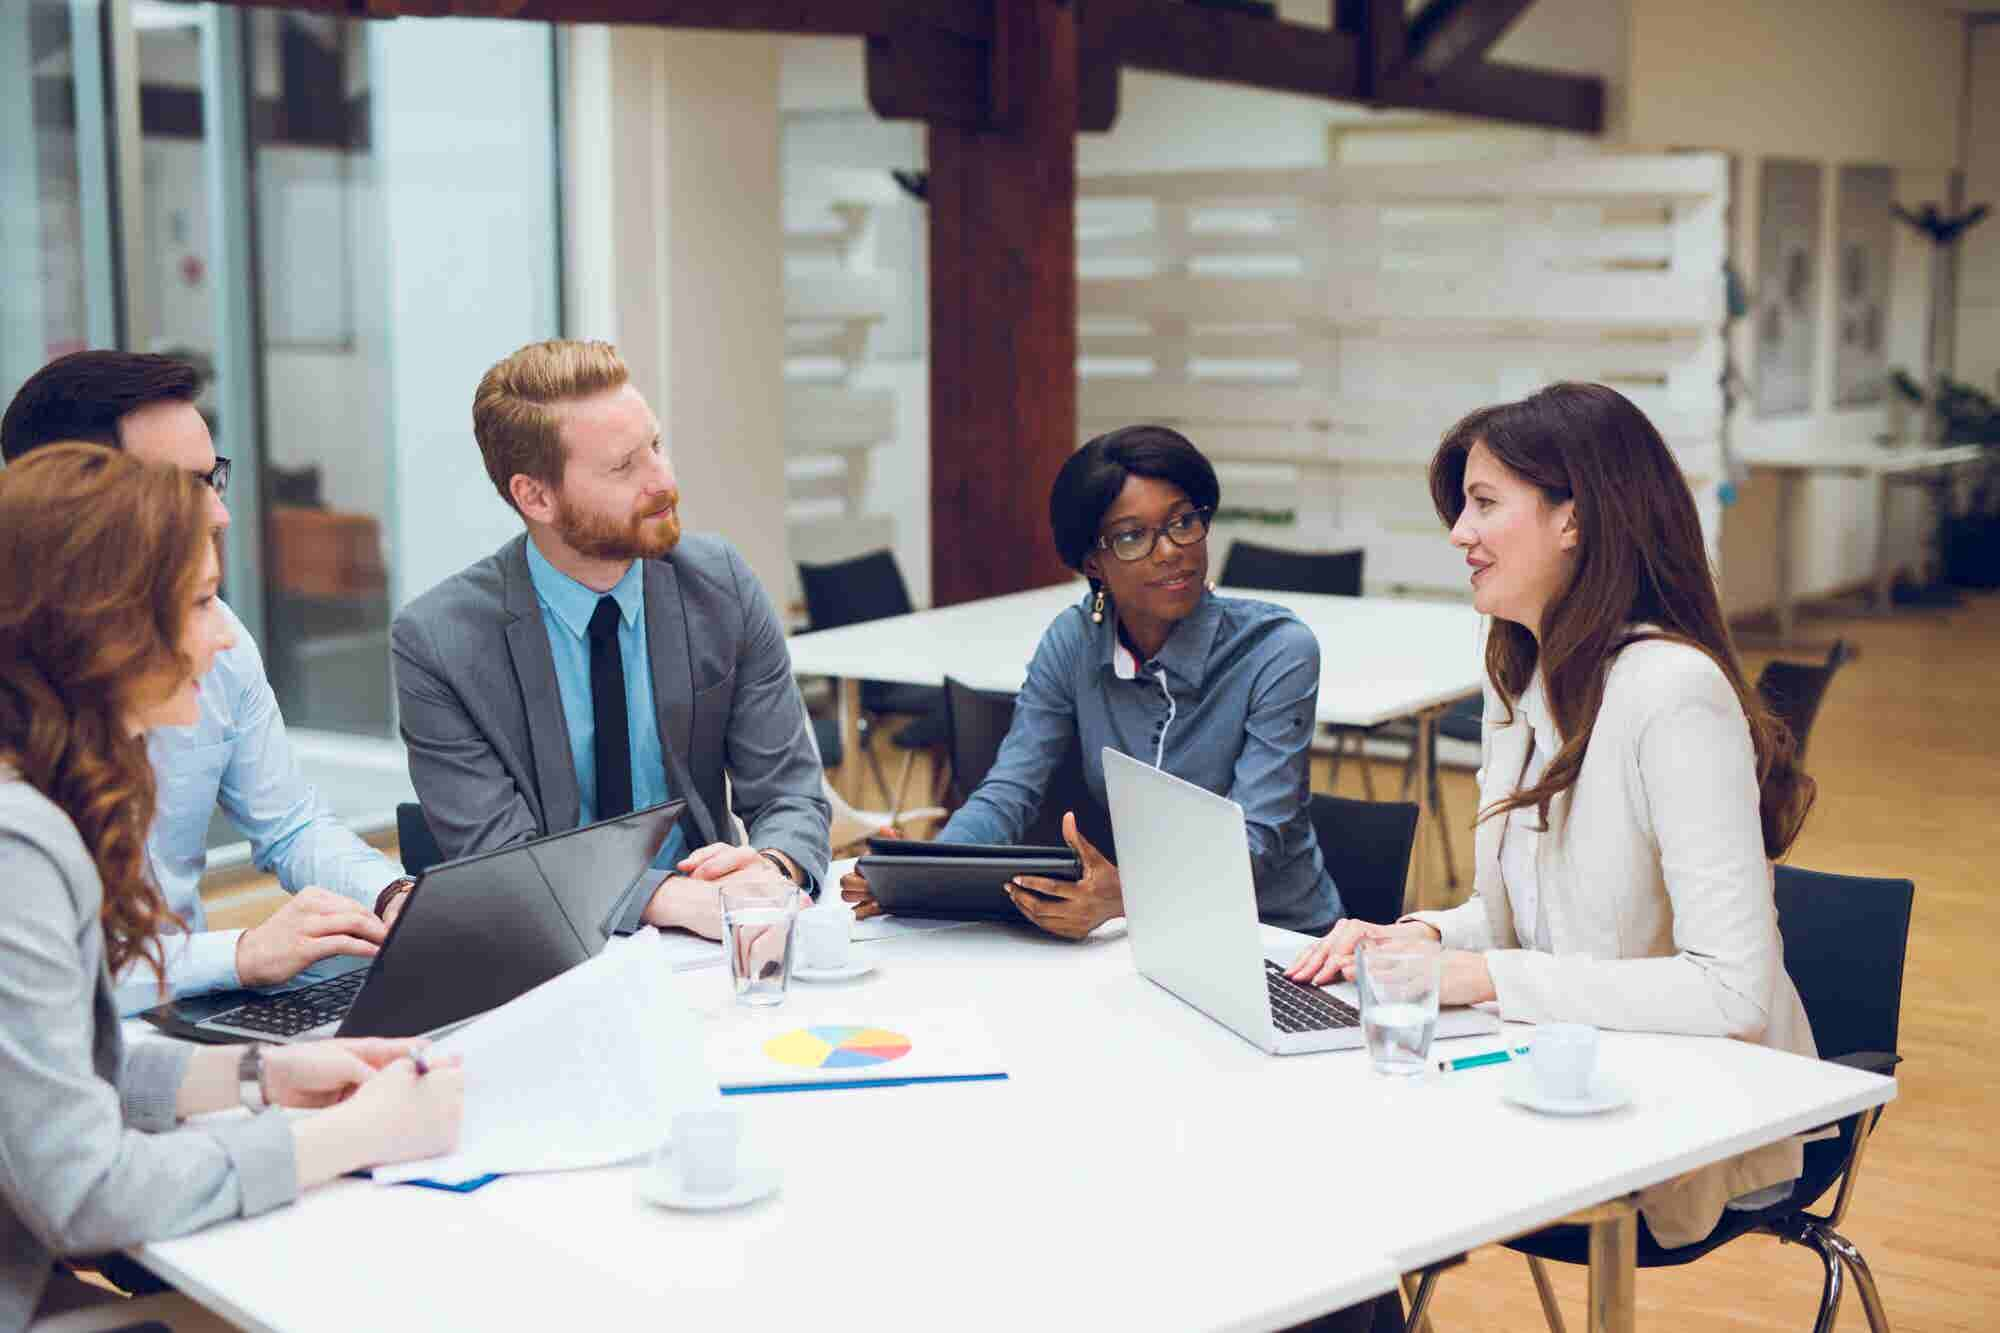 Develop These 5 Communication Skills to Succeed at Business